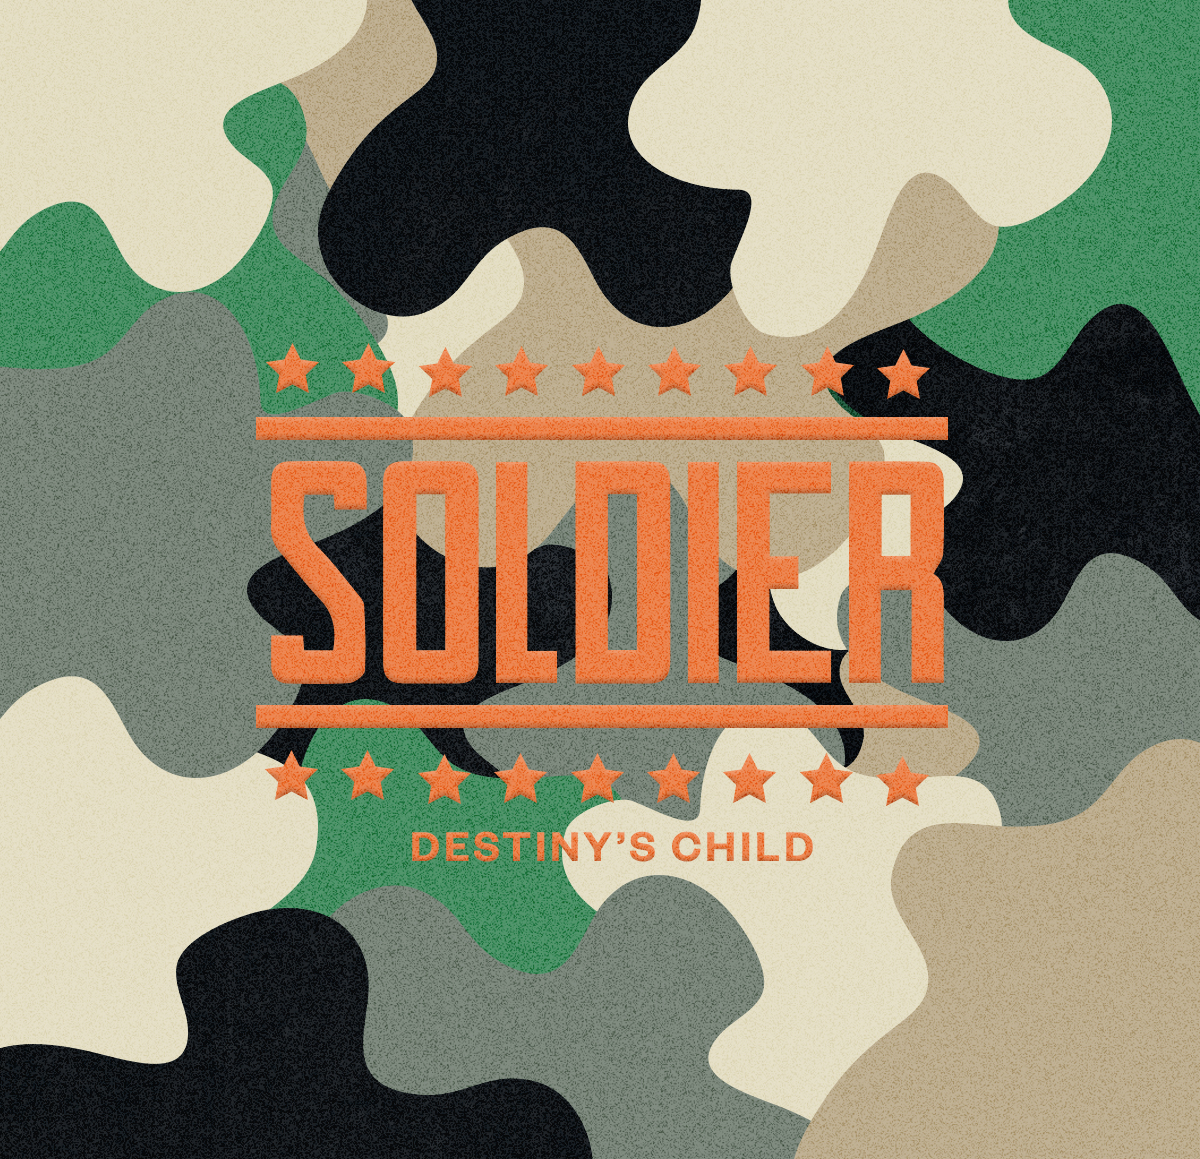 Soldier | Destiny's Child